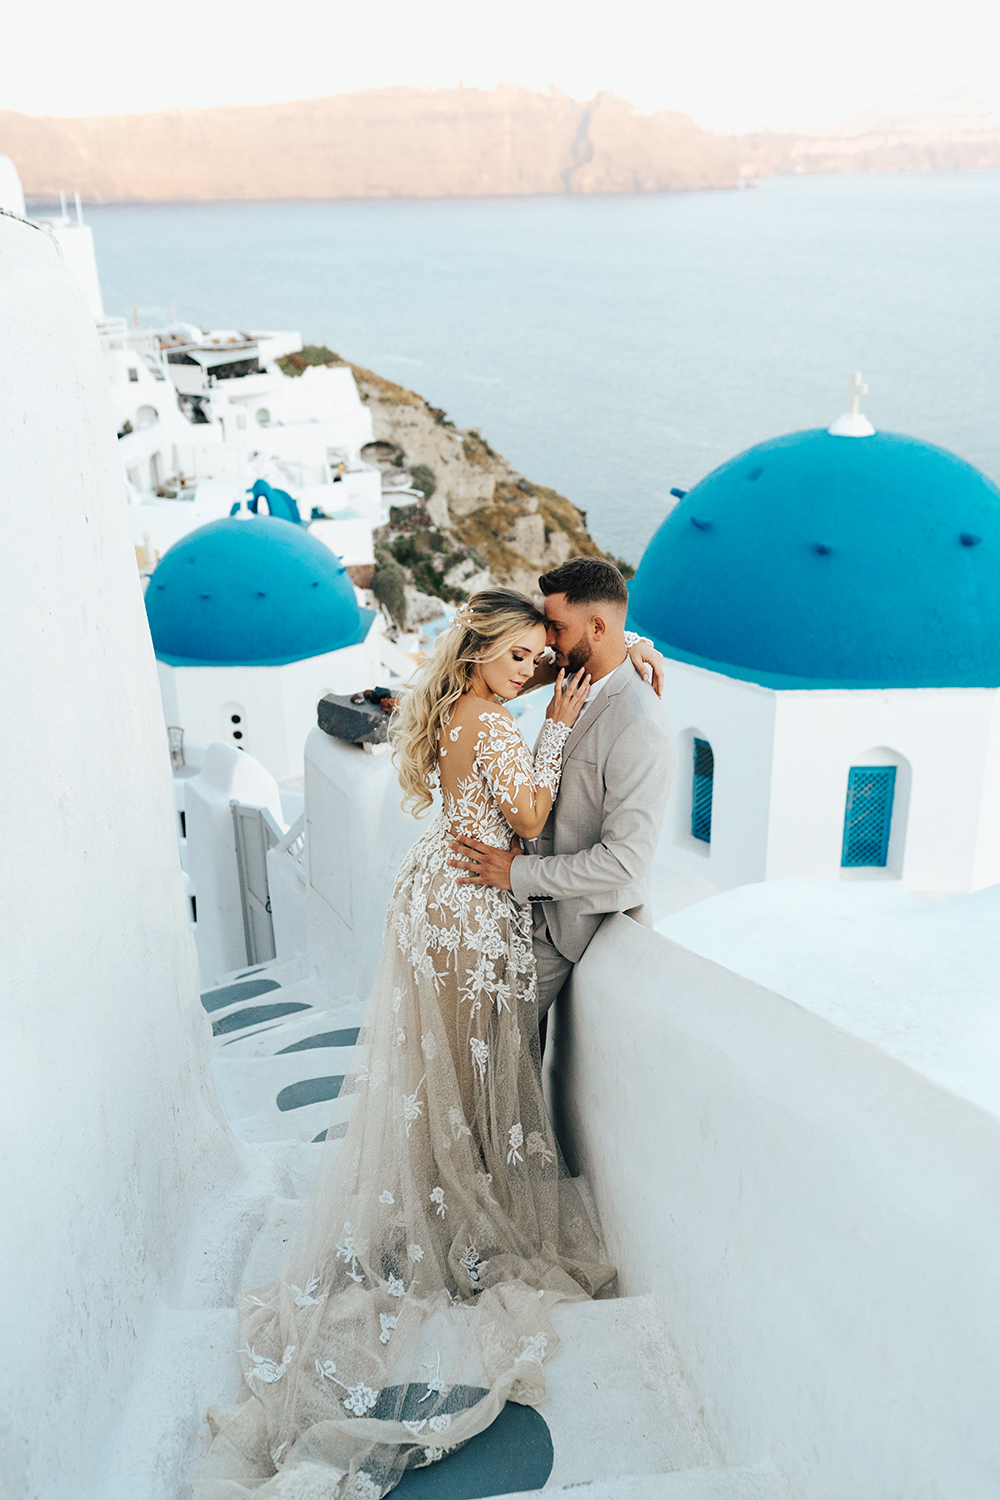 Santorini bride and groom, hair and makeup by Storme